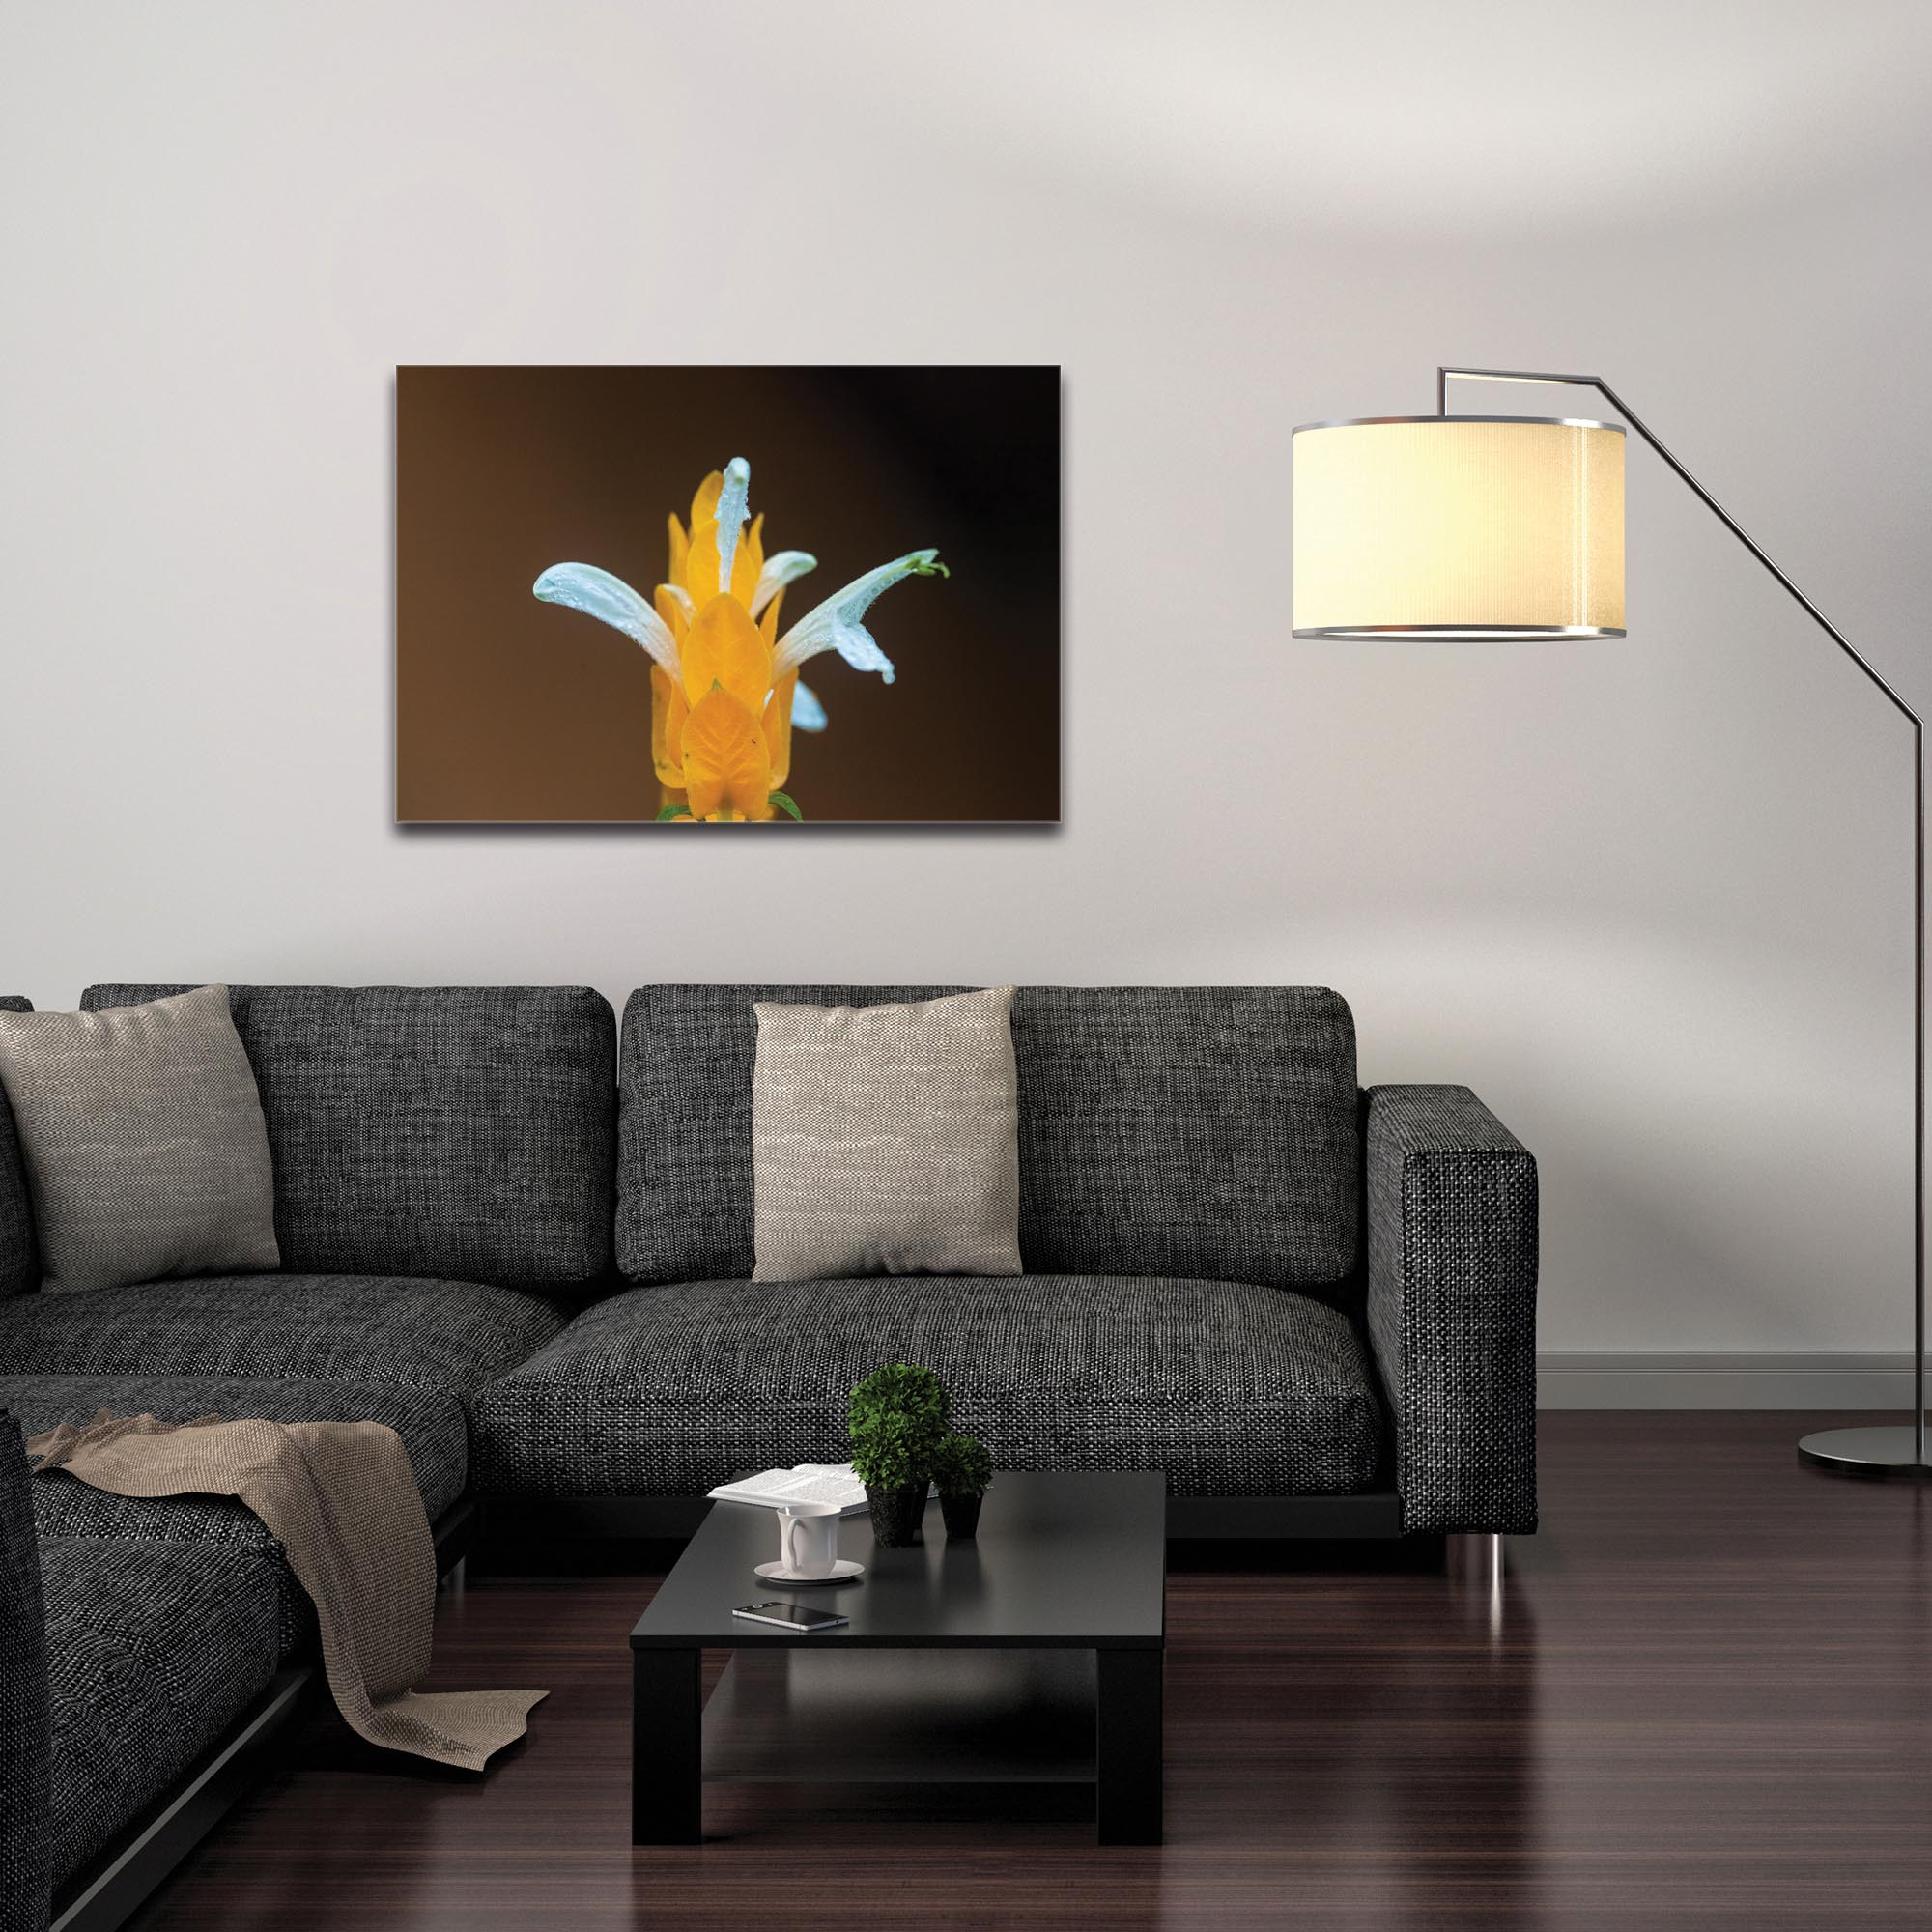 Nature Photography 'White and Gold' - Flower Blossom Art on Metal or Plexiglass - Image 3